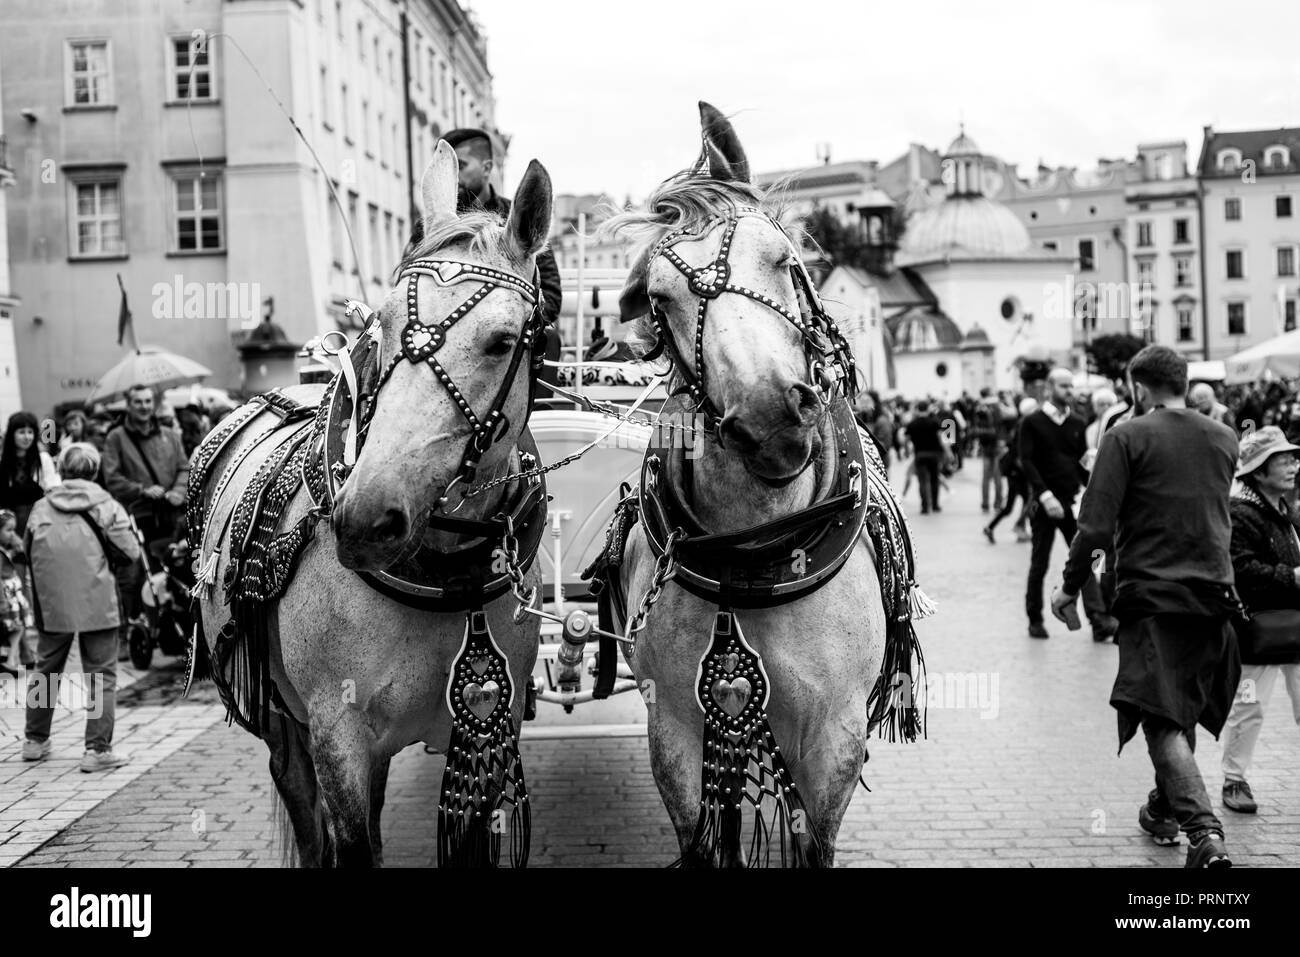 A pair of horses carrying a coach with a couple soon to be married at the city market square - Stock Image